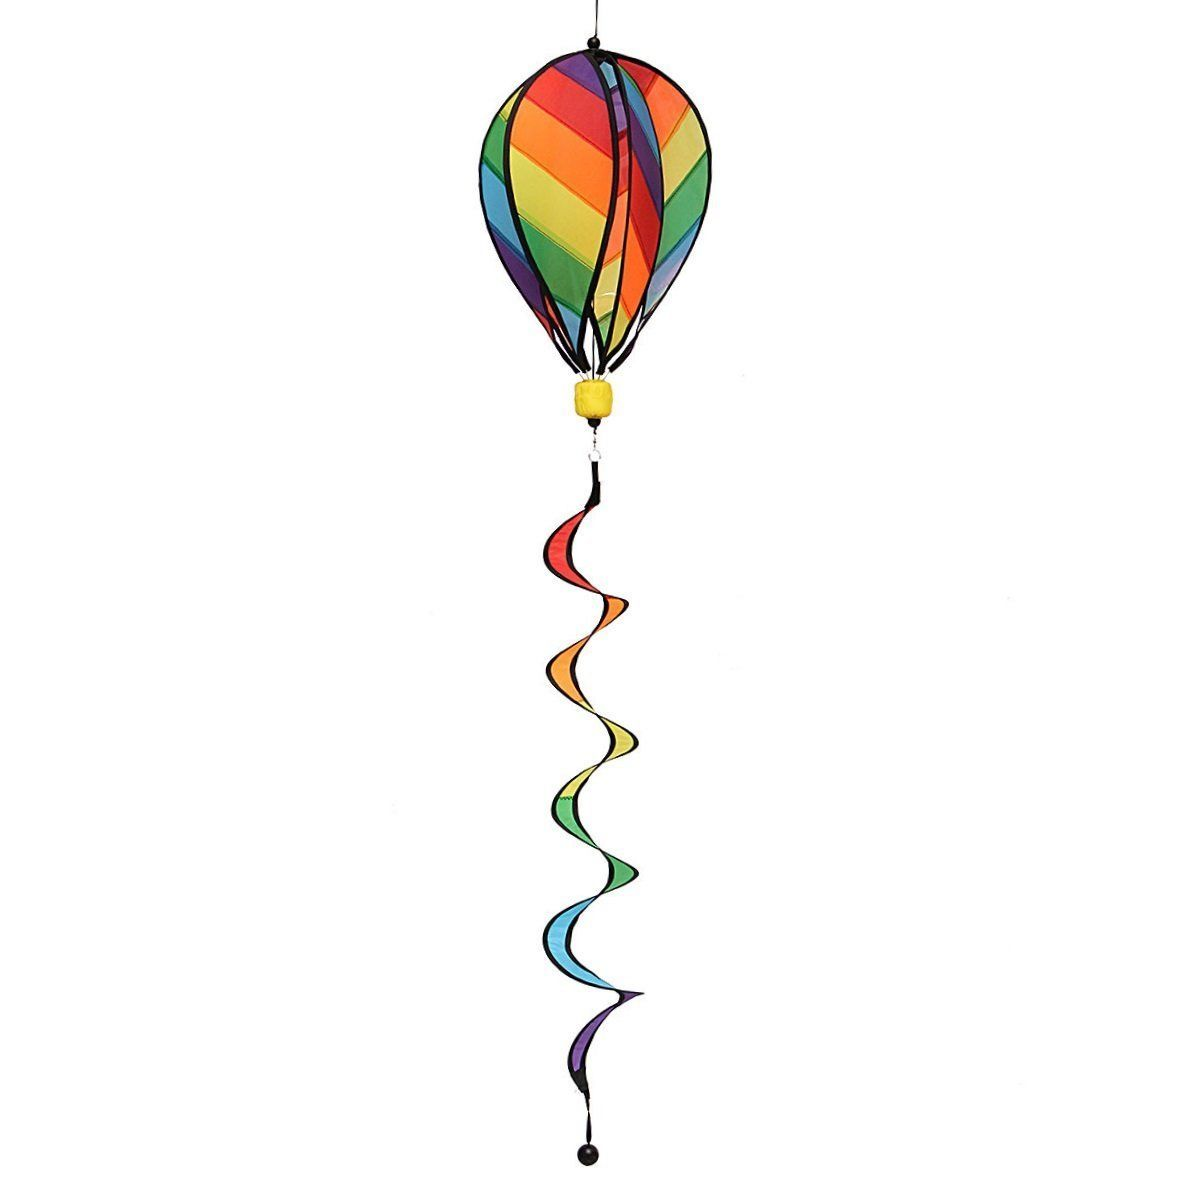 Garden Yard Wind Spinner, Mini-Factory Colorful Hot Air Balloon Wind Spinner Hanging... by